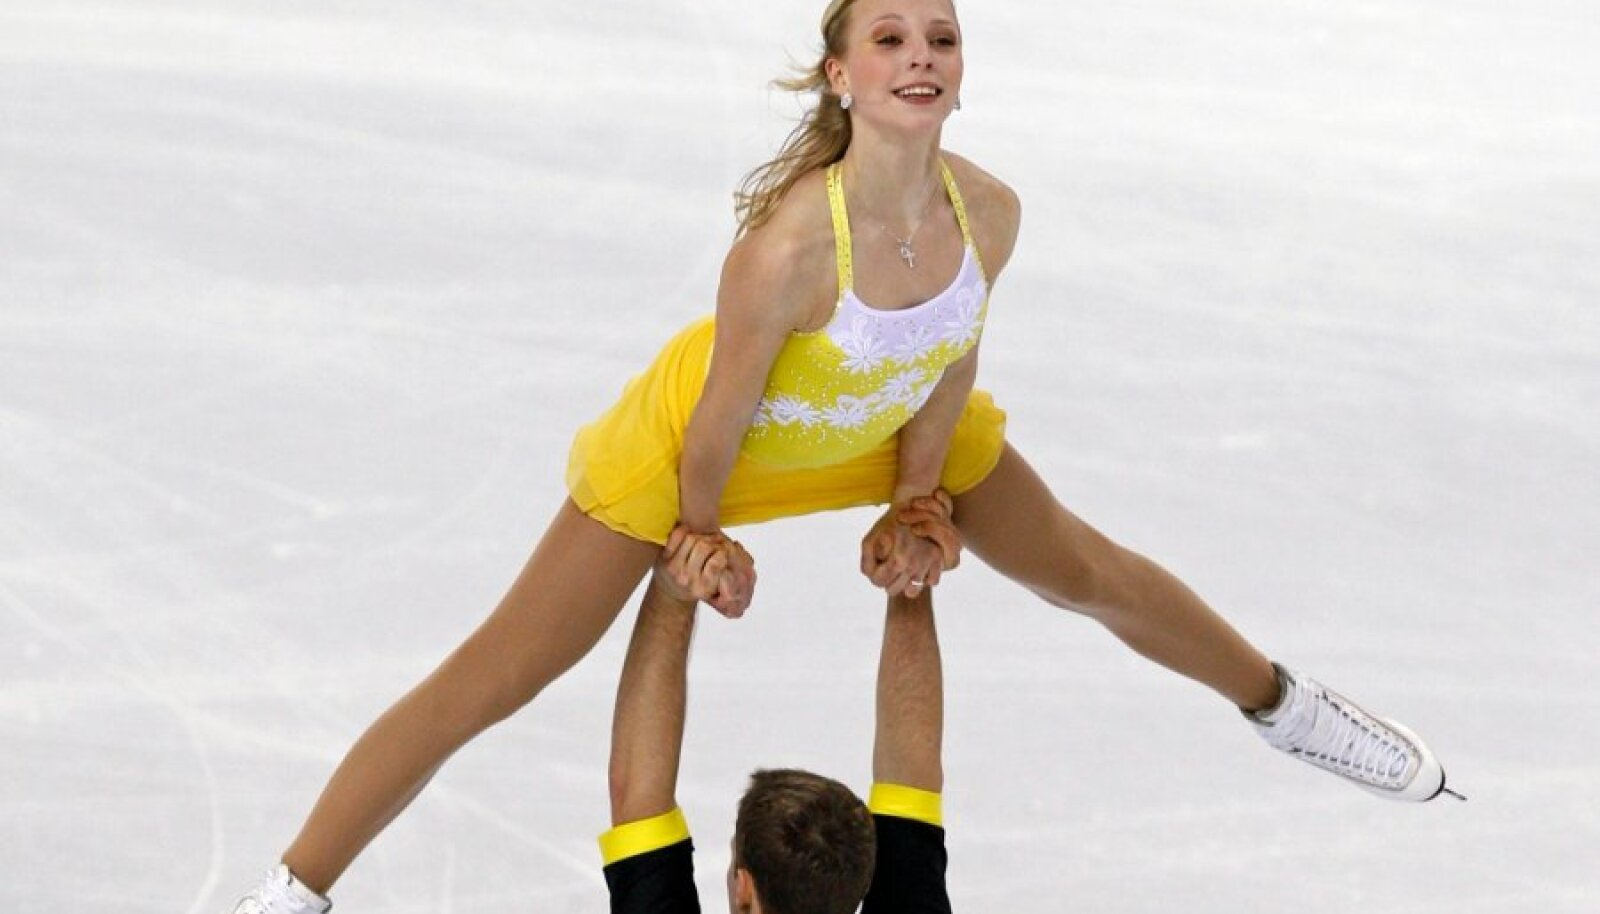 Sergejeva and Glebov of Estonia perform during the pairs short program event at the World Figure Skating Championships in Turin